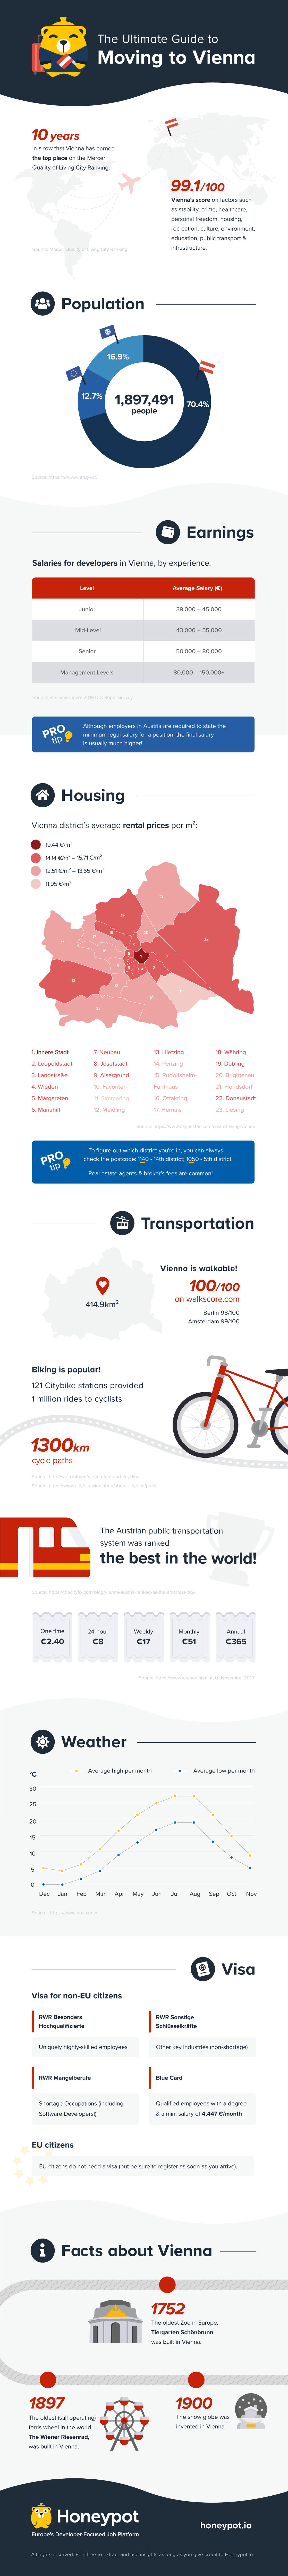 Moving to Vienna infographic.